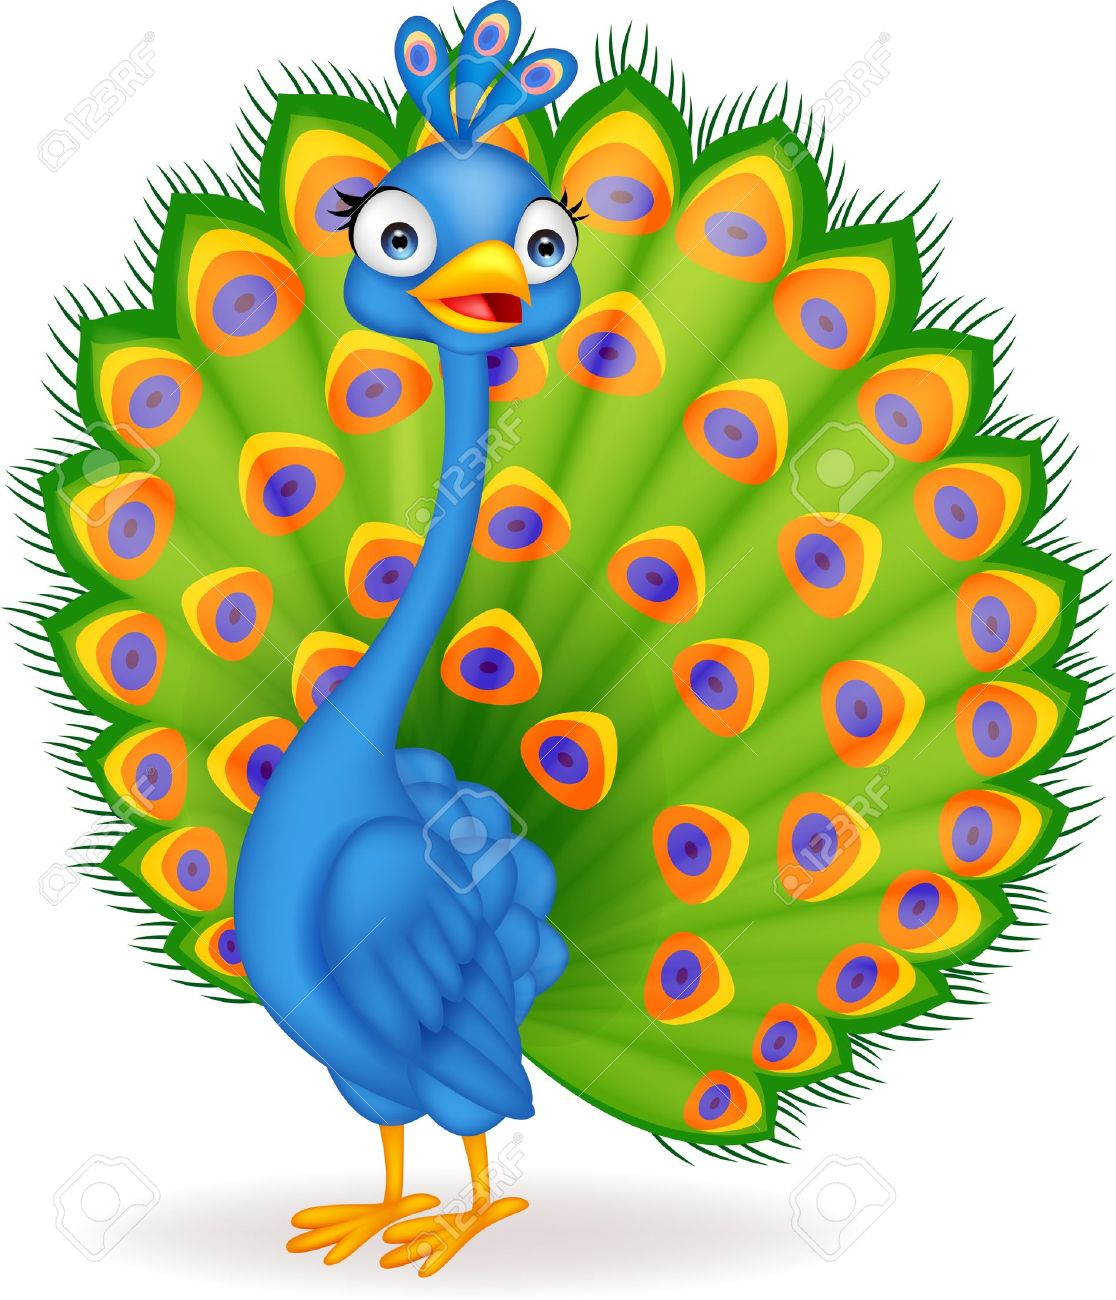 1,000 Peafowl Cliparts, Stock Vector And Royalty Free Peafowl.